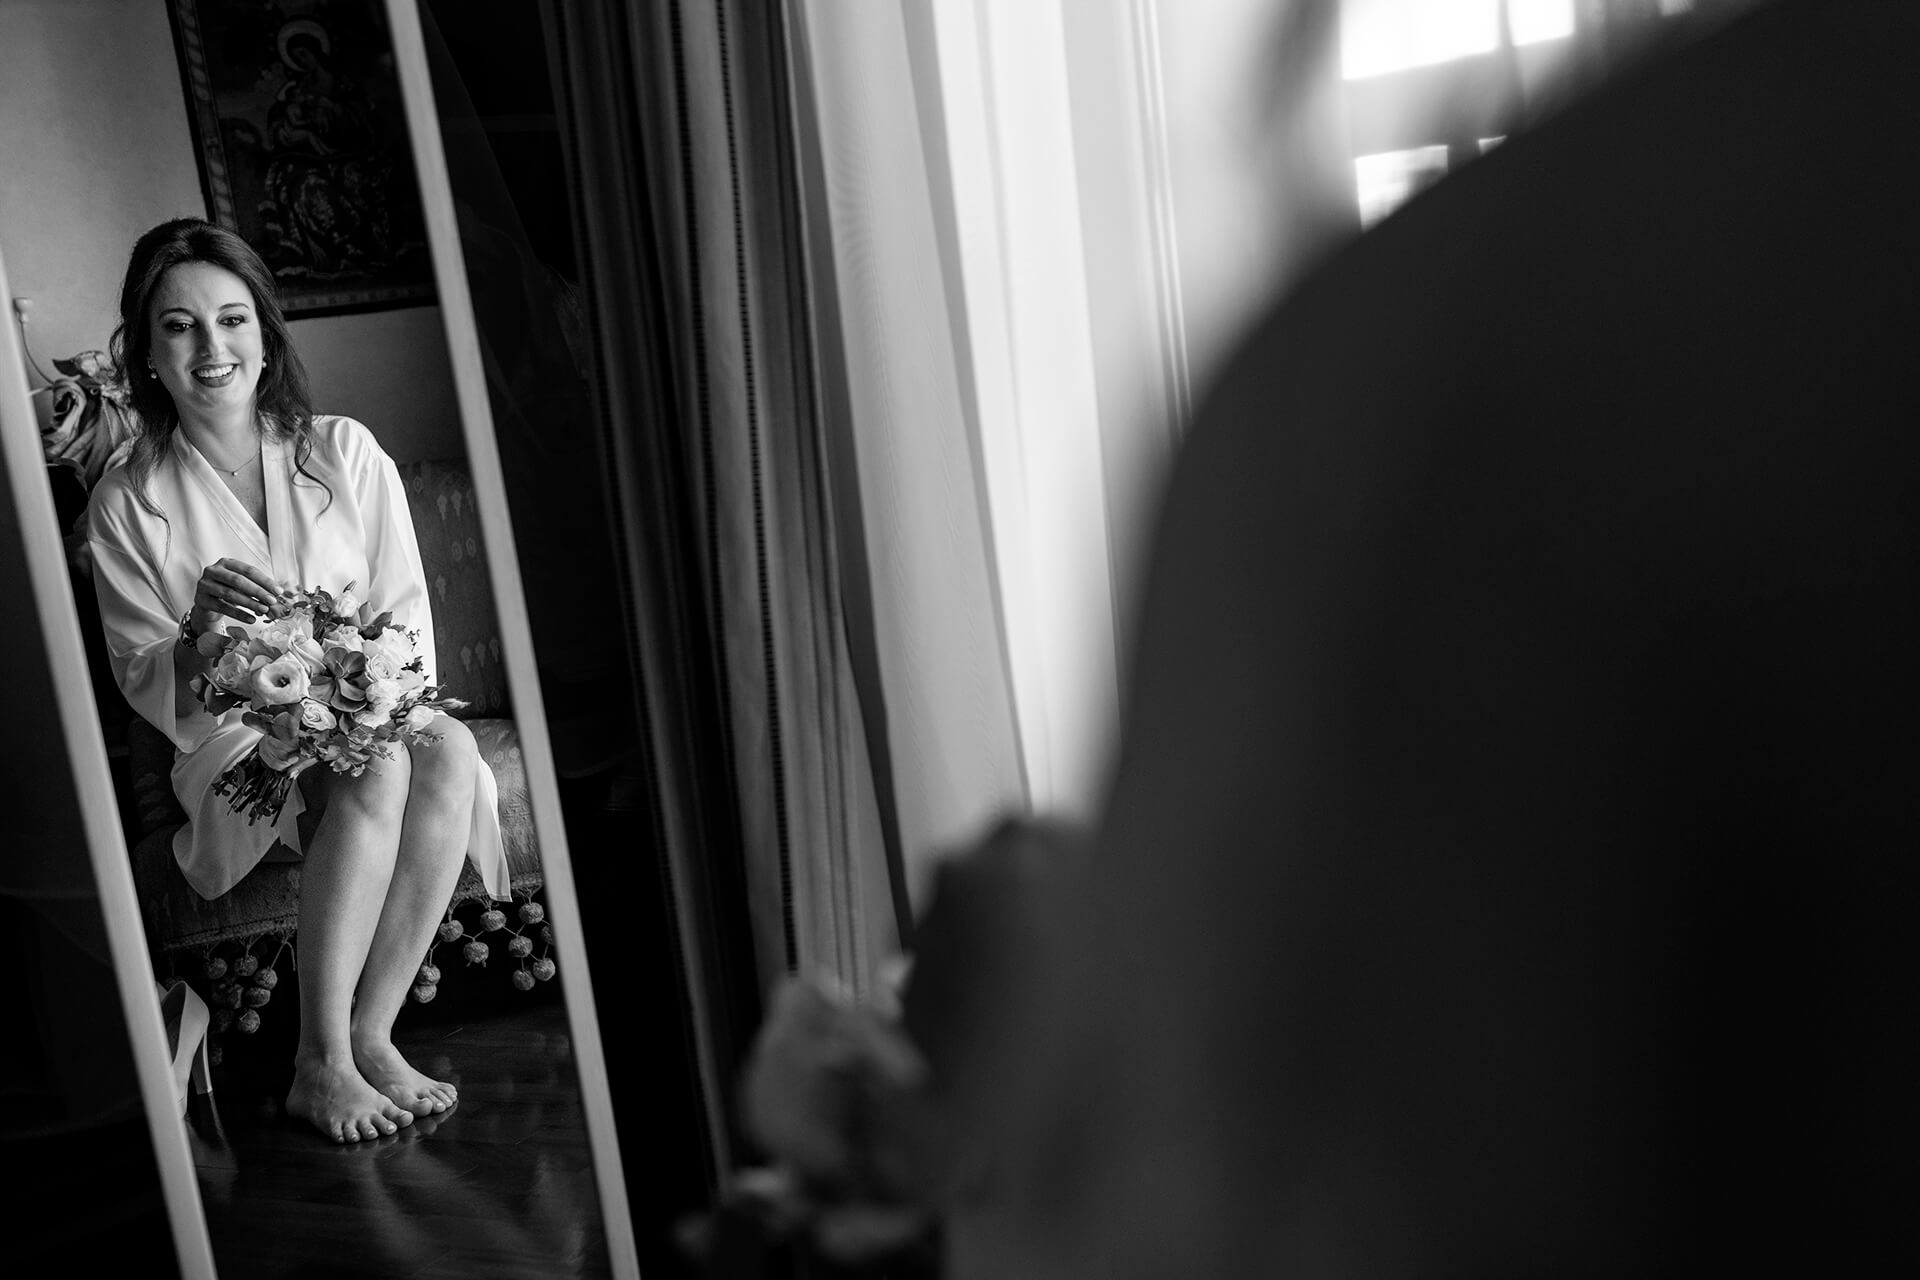 Italian Wedding Photography - Bride Getting Ready | with her bouquet in hand while she appreciates the work of the hairdresser